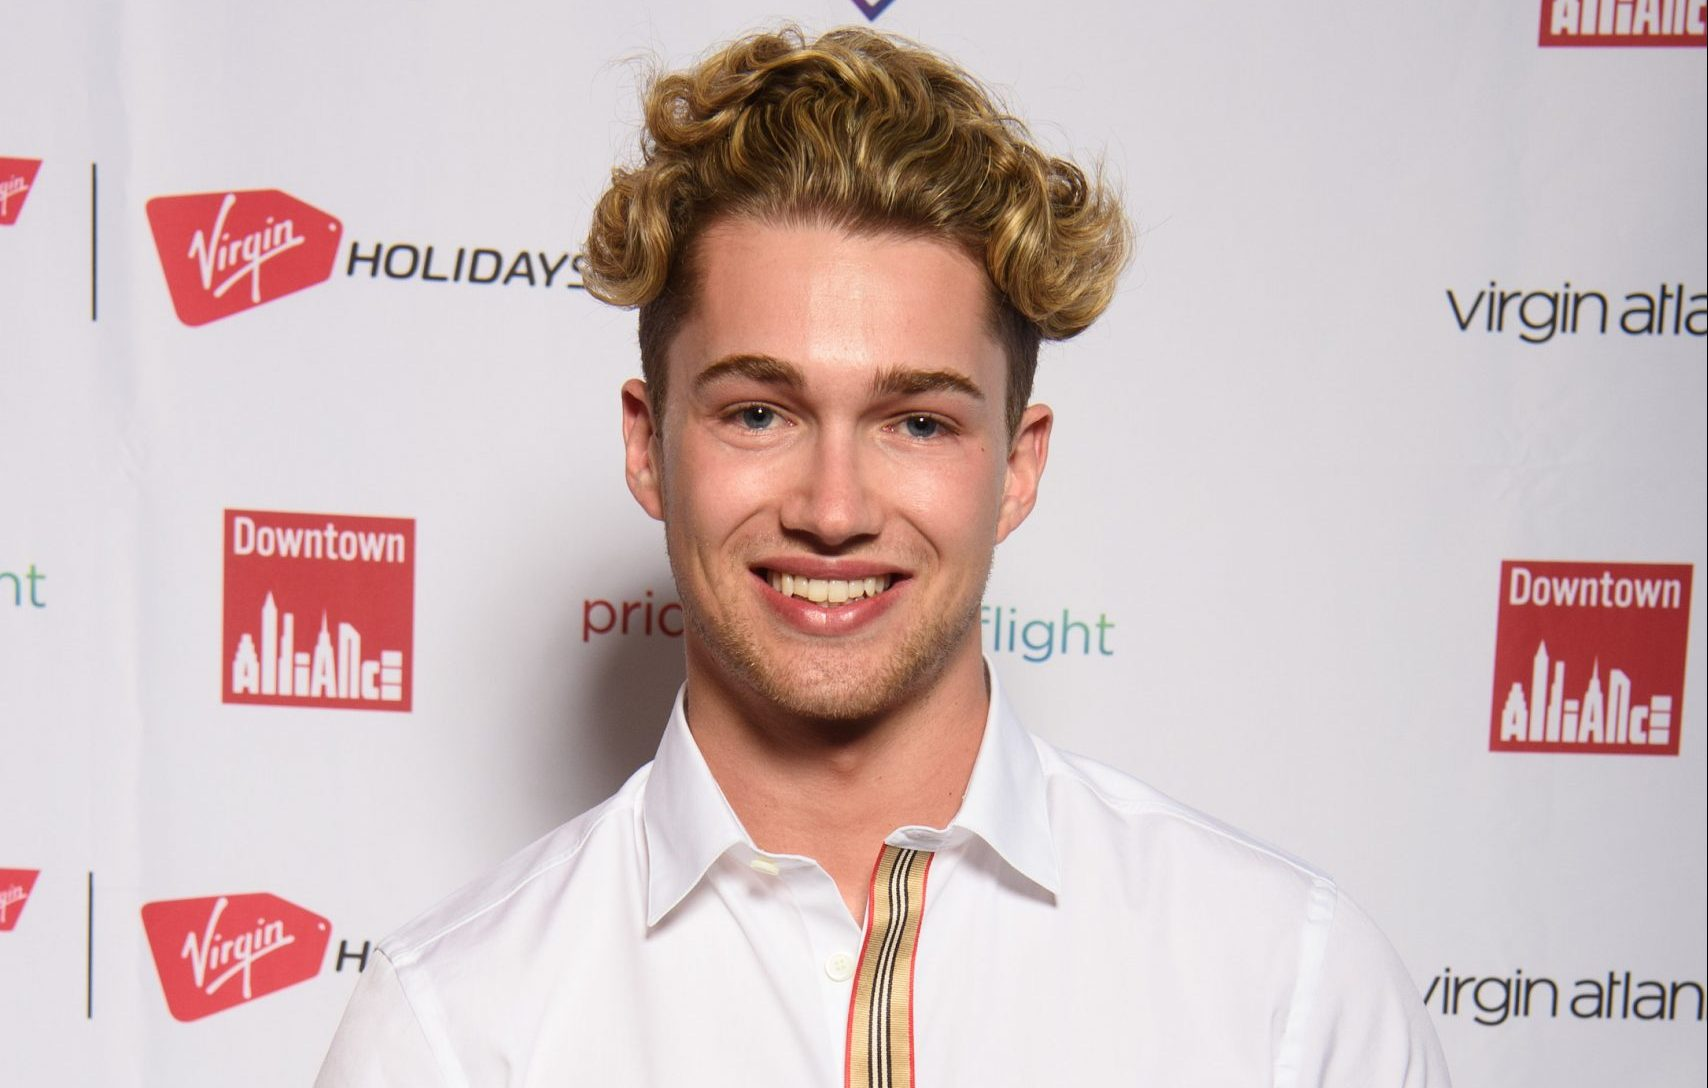 AJ Pritchard Tests Positive For Covid-19 & Throws Im A